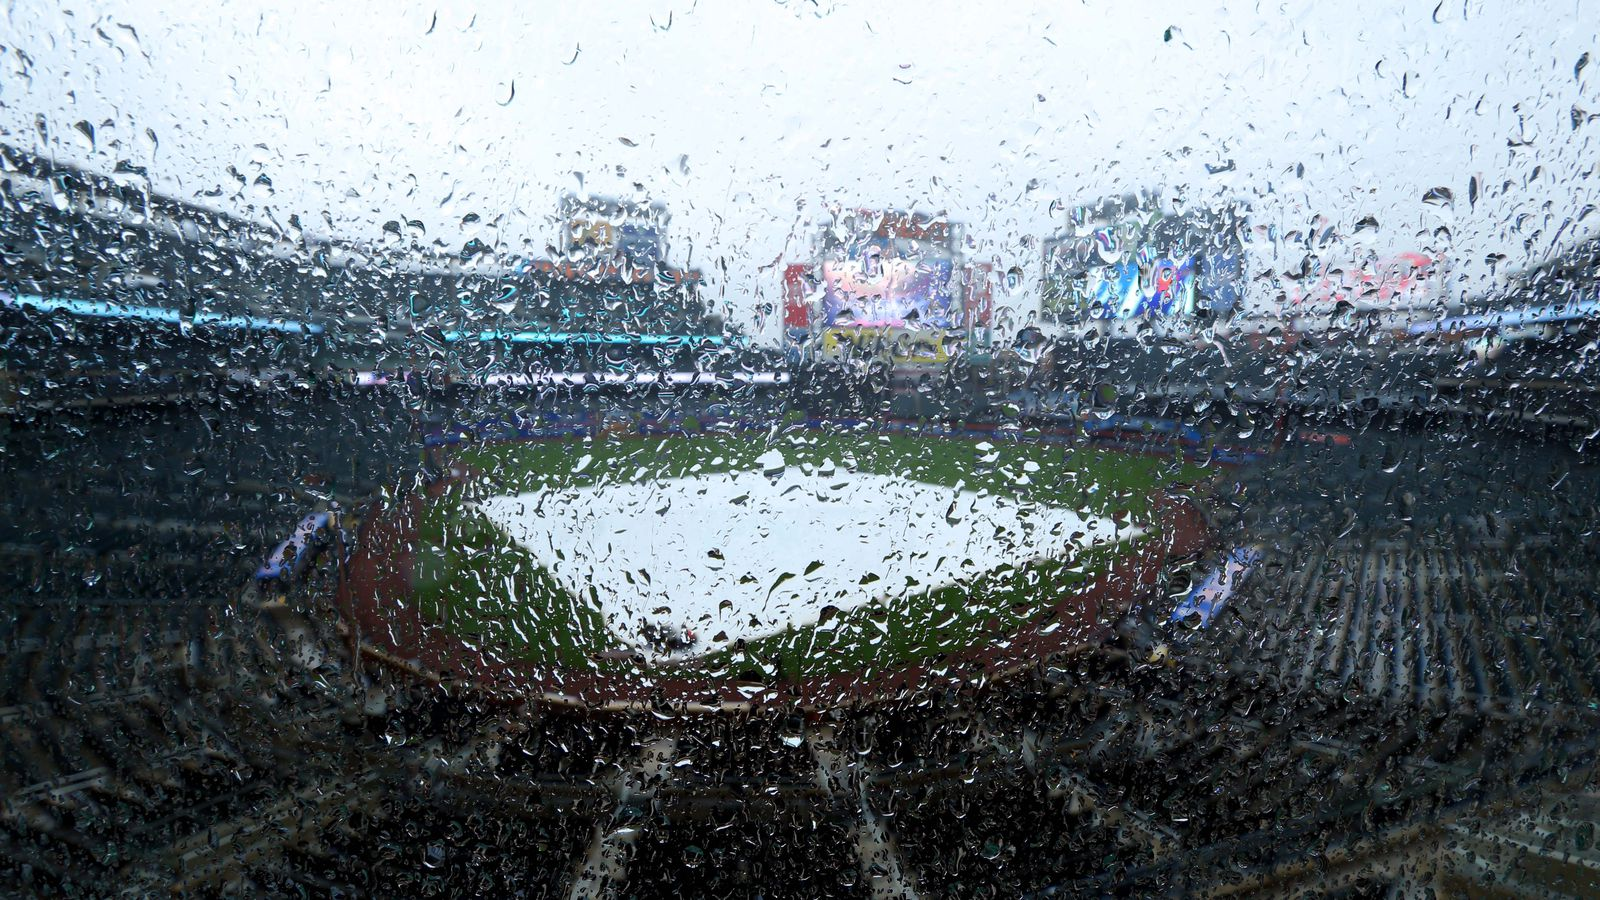 Braves and Mets get rained out - Talking Chop